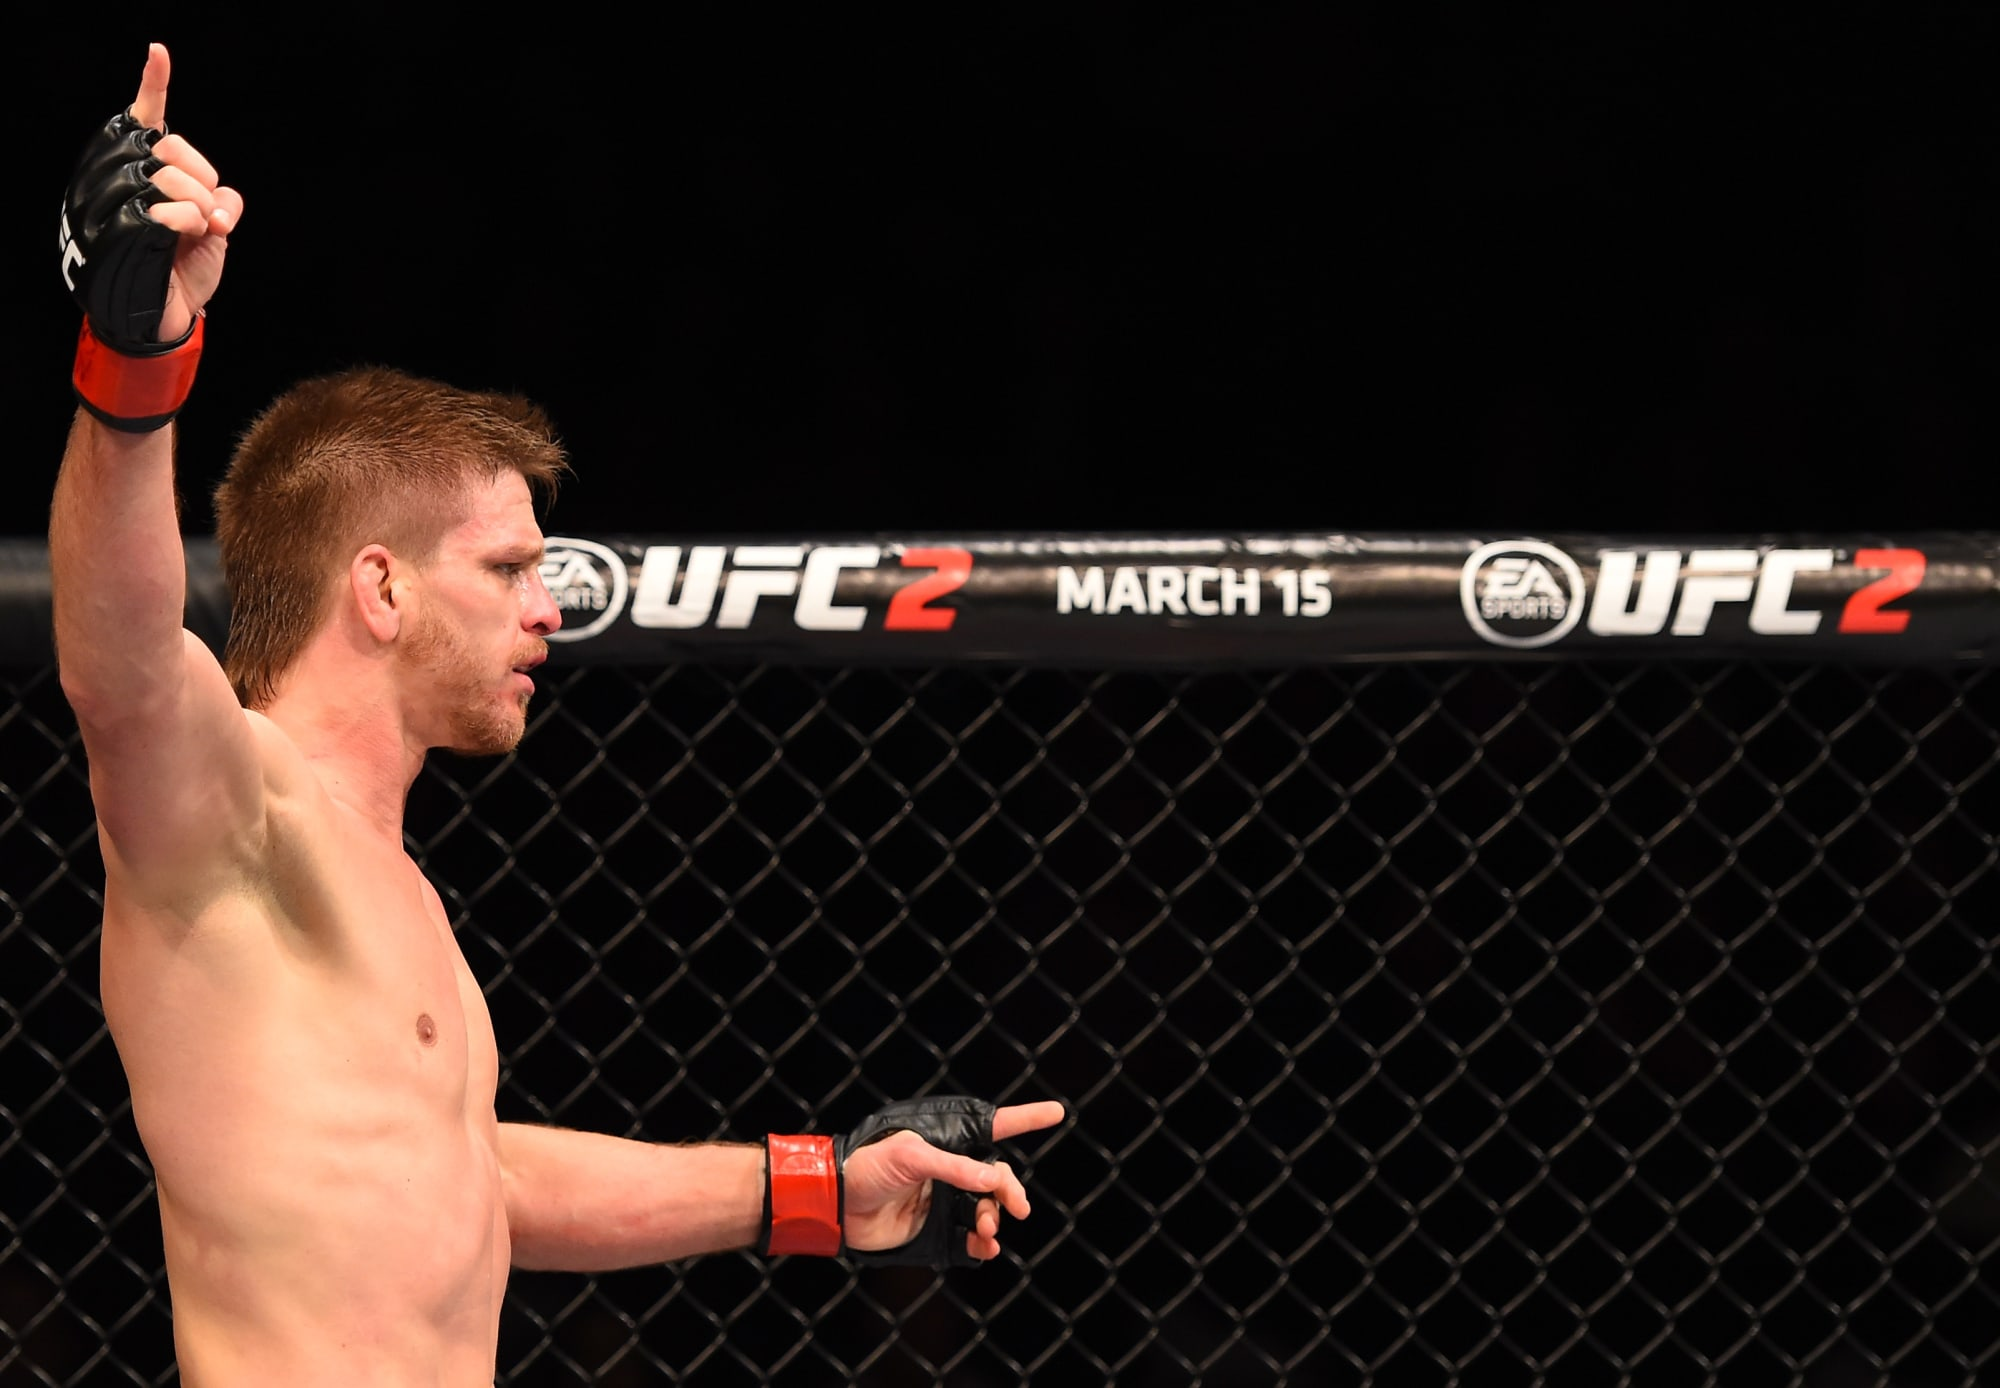 How to bet on ufc fights in vegas wagershack mobile betting